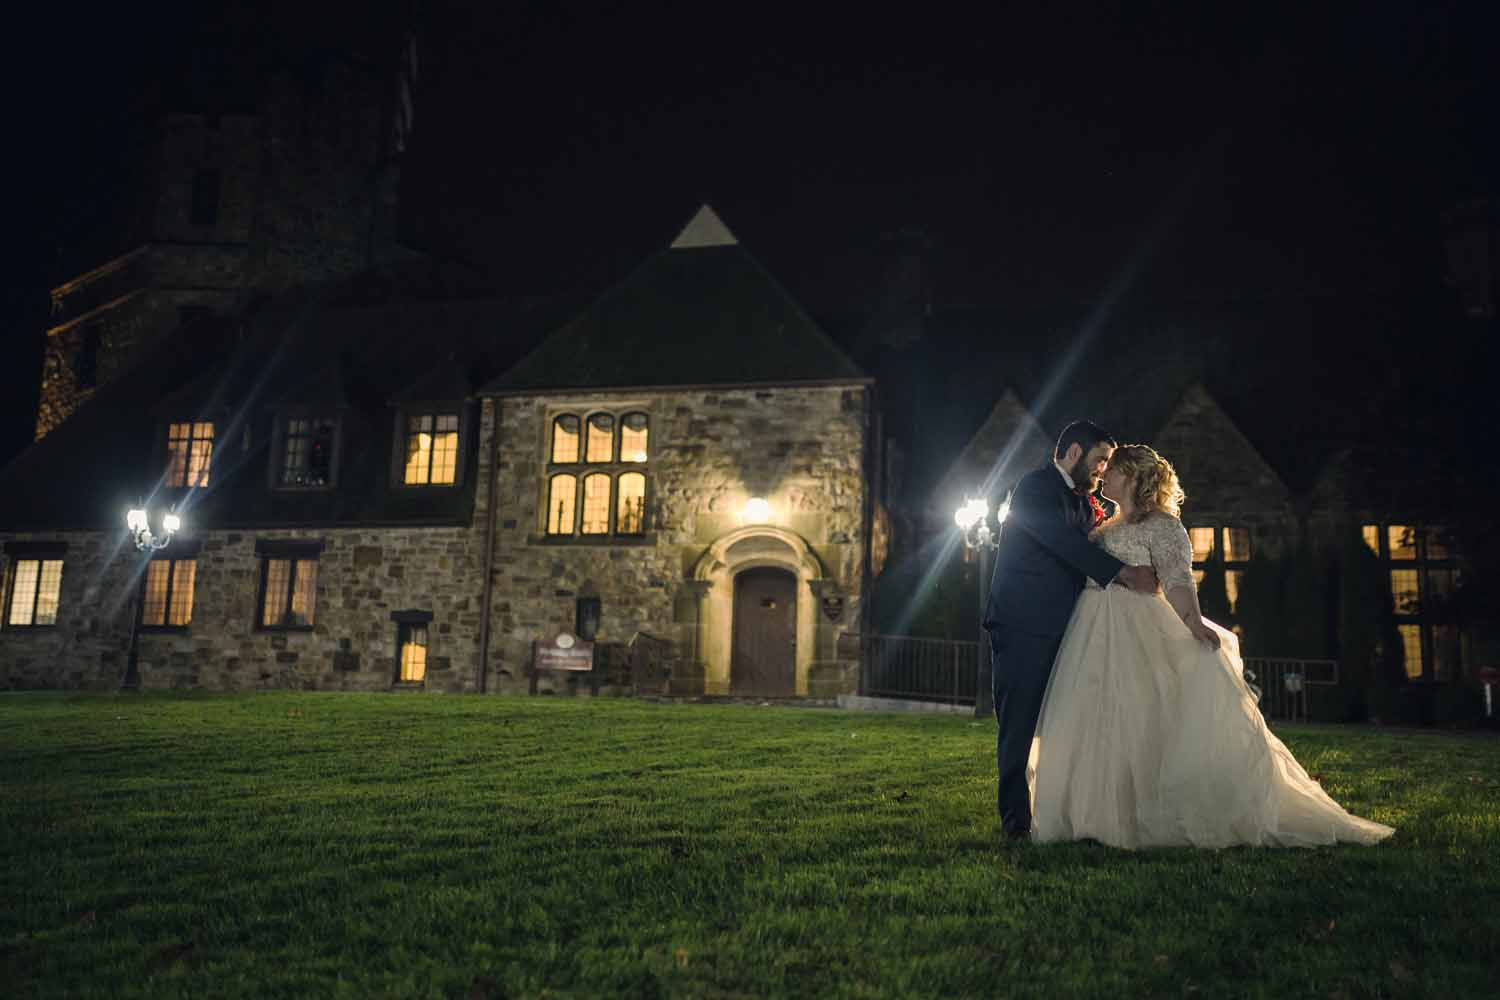 Dancing under the stars at Stokesay Castle